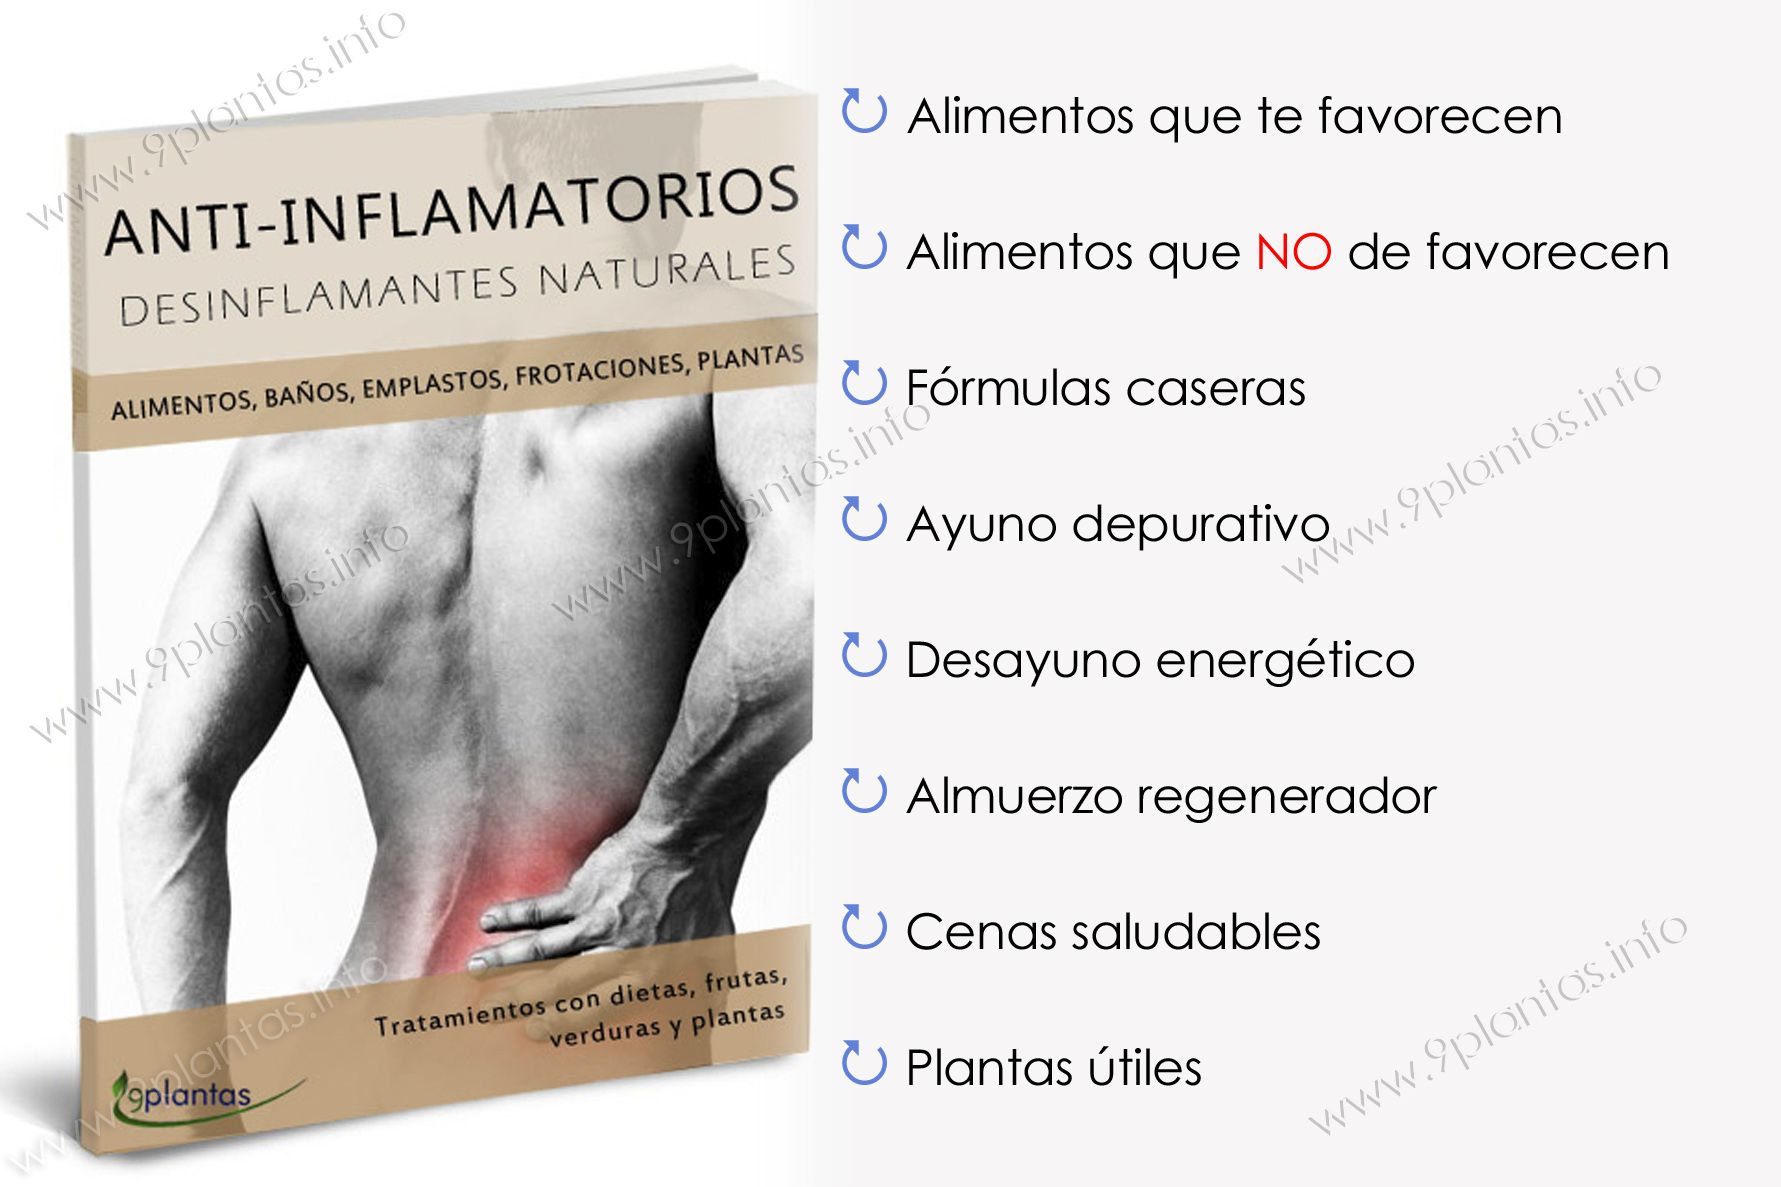 E-book | anti-inflamatorios, desinflamantes naturales